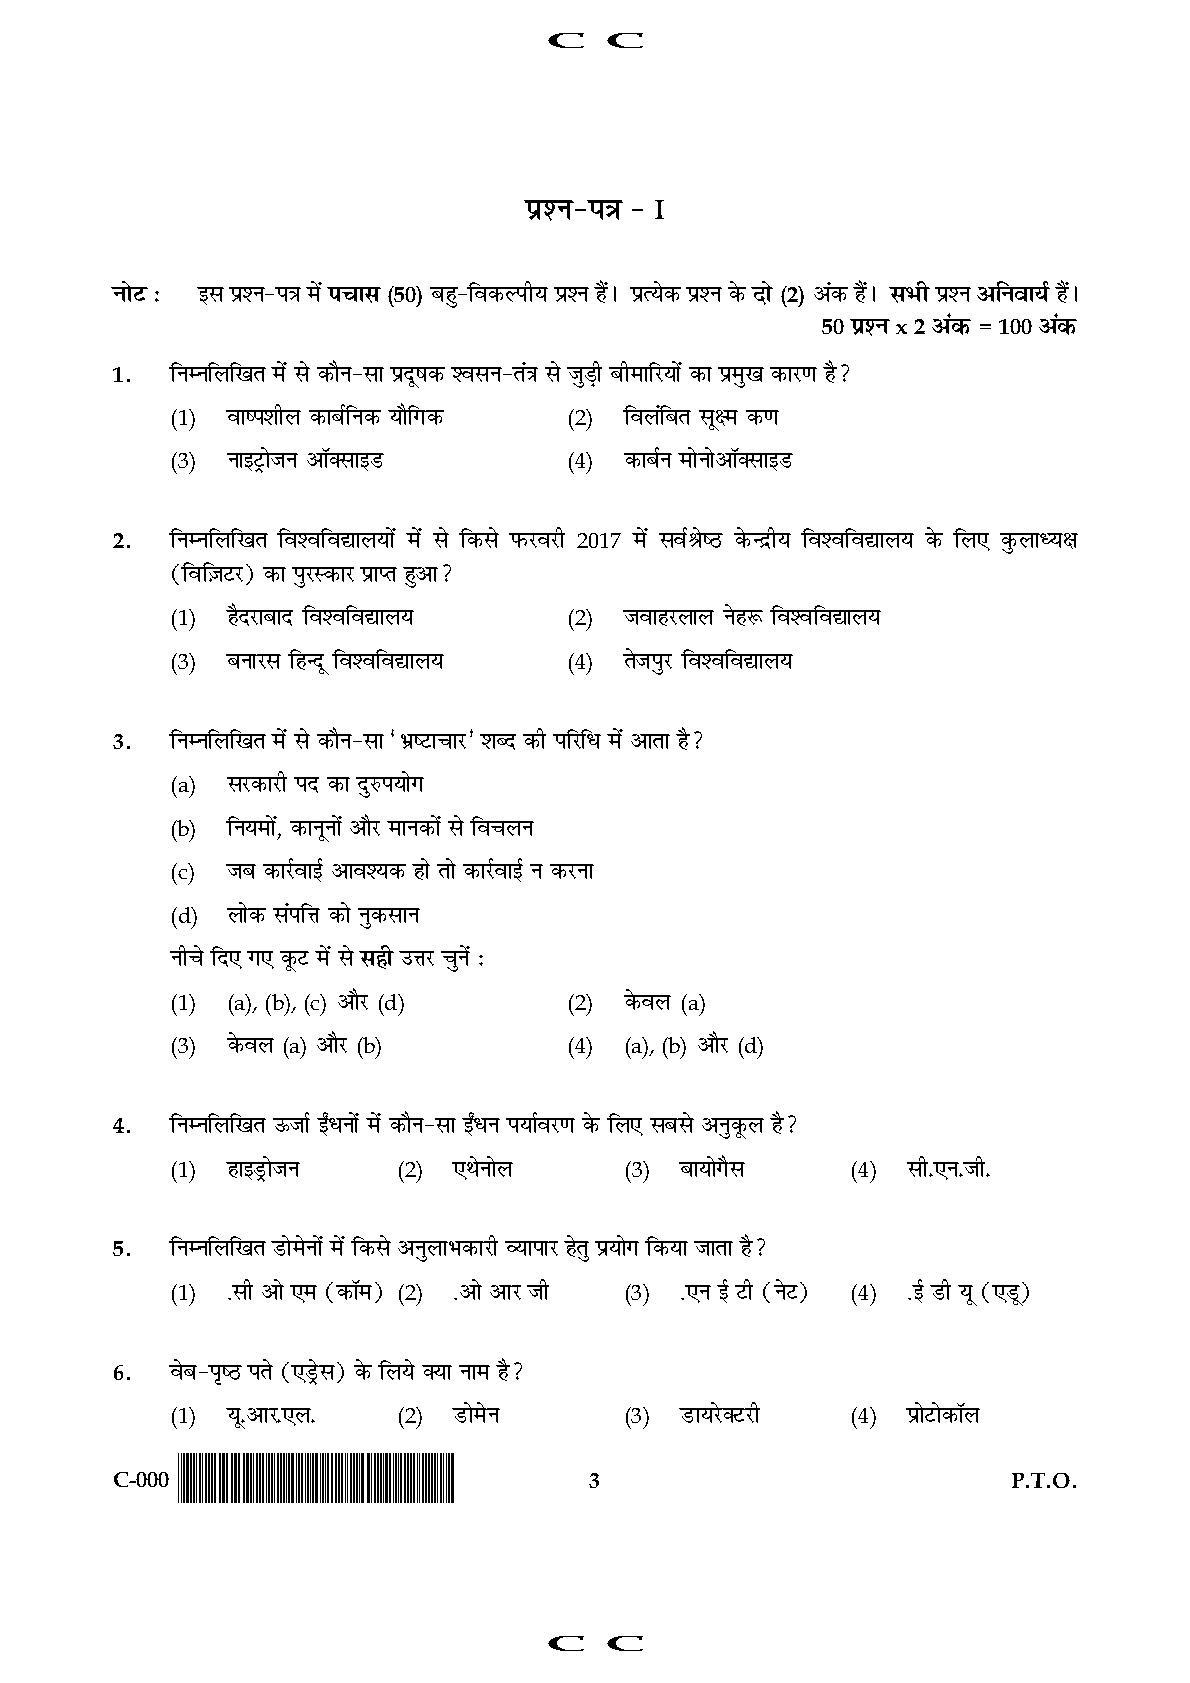 General Paper I Set C November 2017 in Hindi-UGC NET Previous